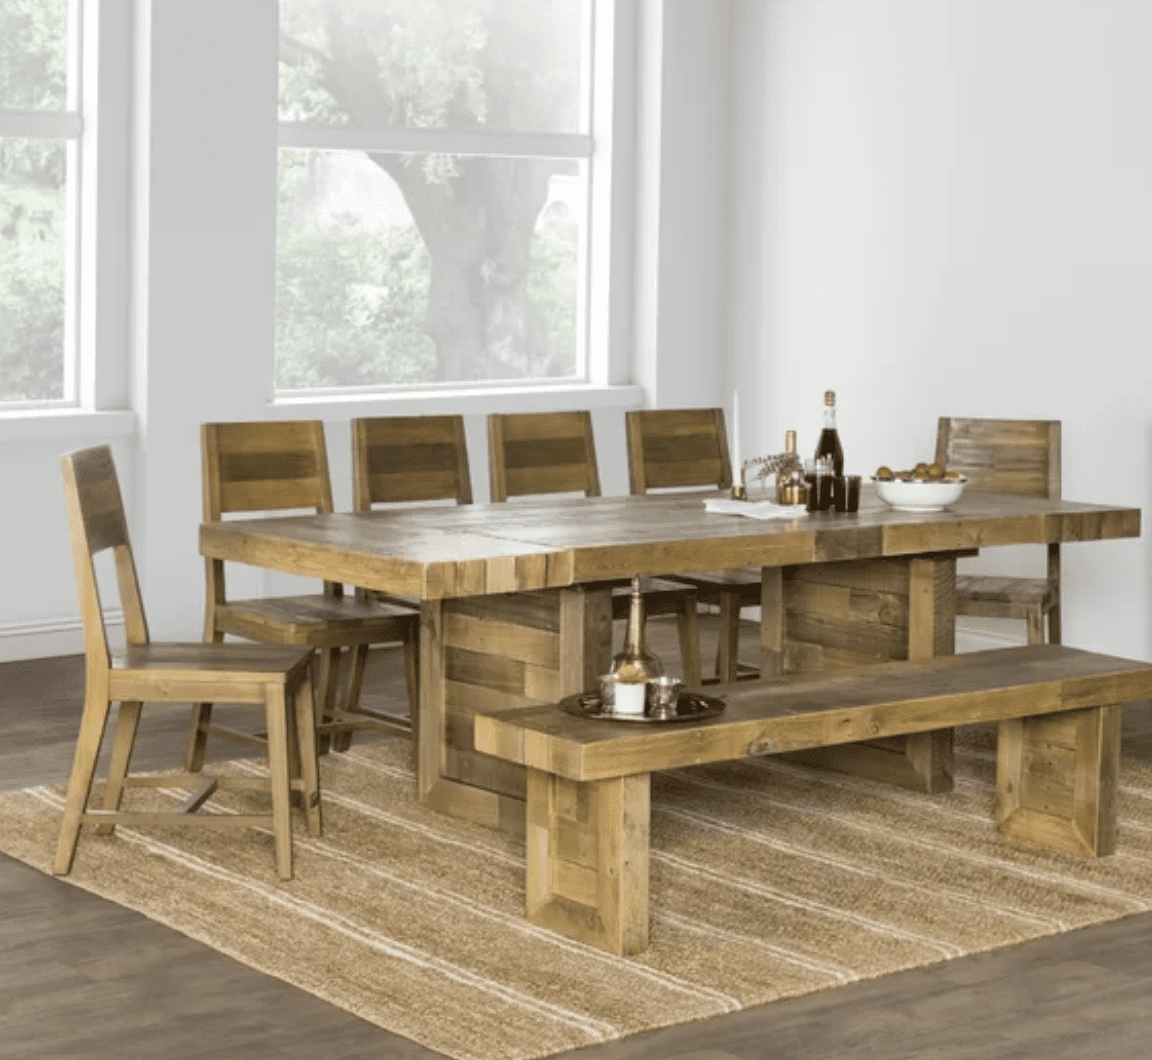 Fashionable The 9 Best Dining Room Tables Of 2020 Within Rustic Mid Century Modern 6 Seating Dining Tables In White And Natural Wood (Gallery 26 of 30)